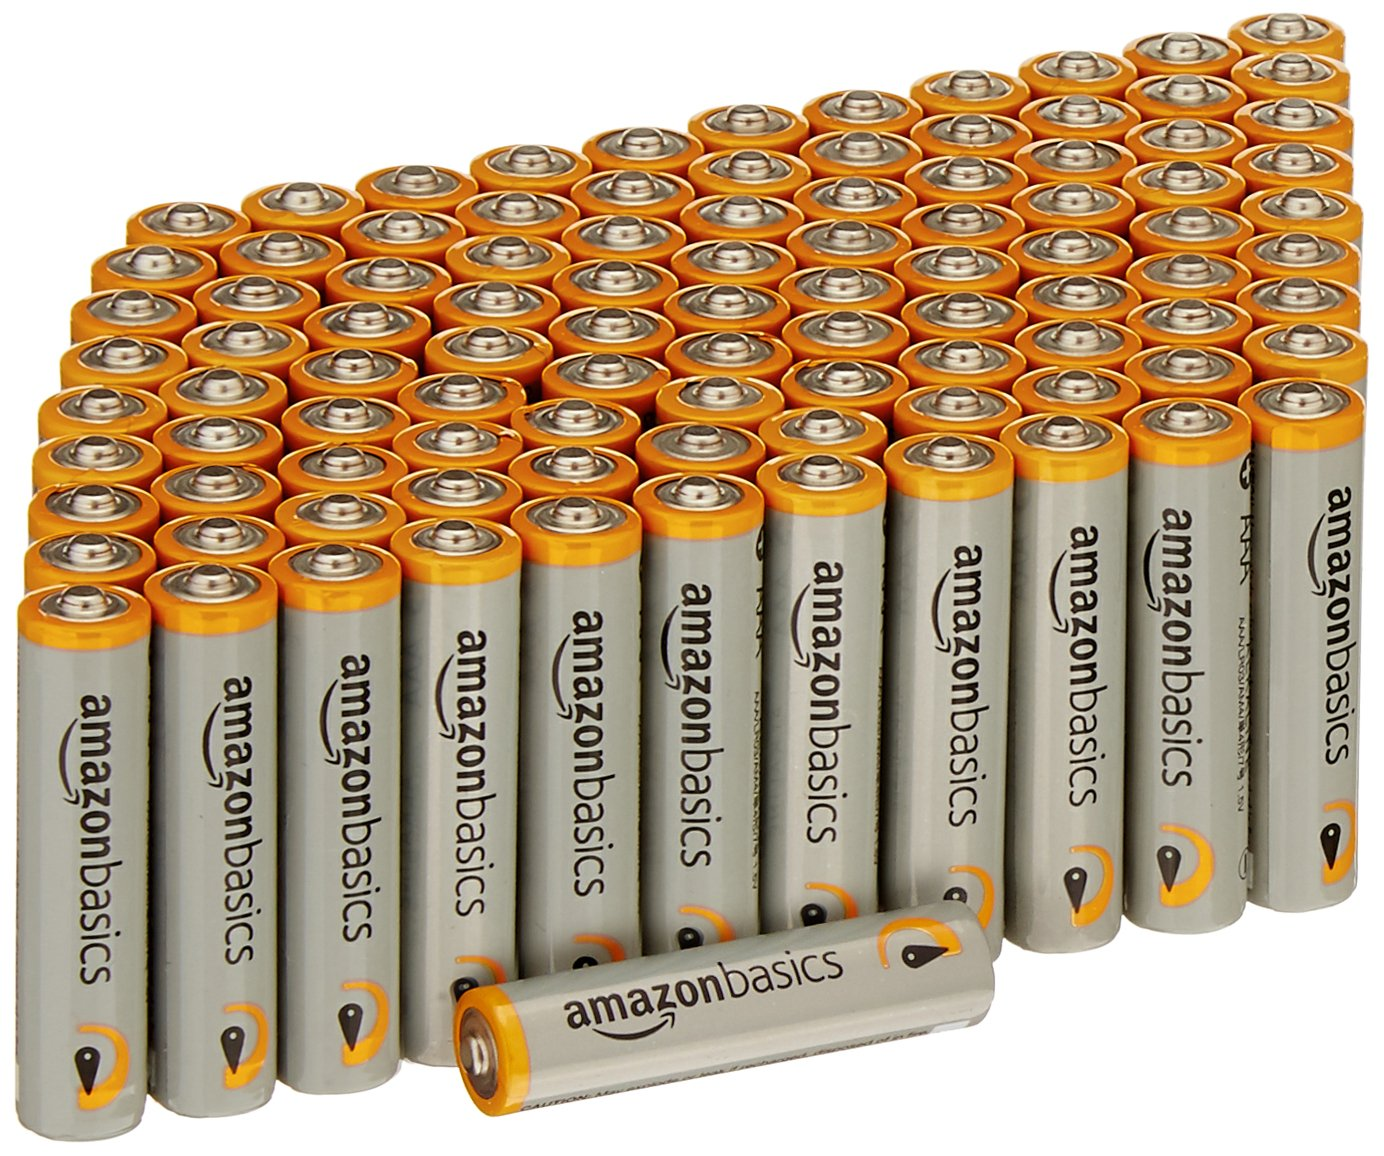 AmazonBasics AAA Performance Alkaline Batteries (100-Pack)